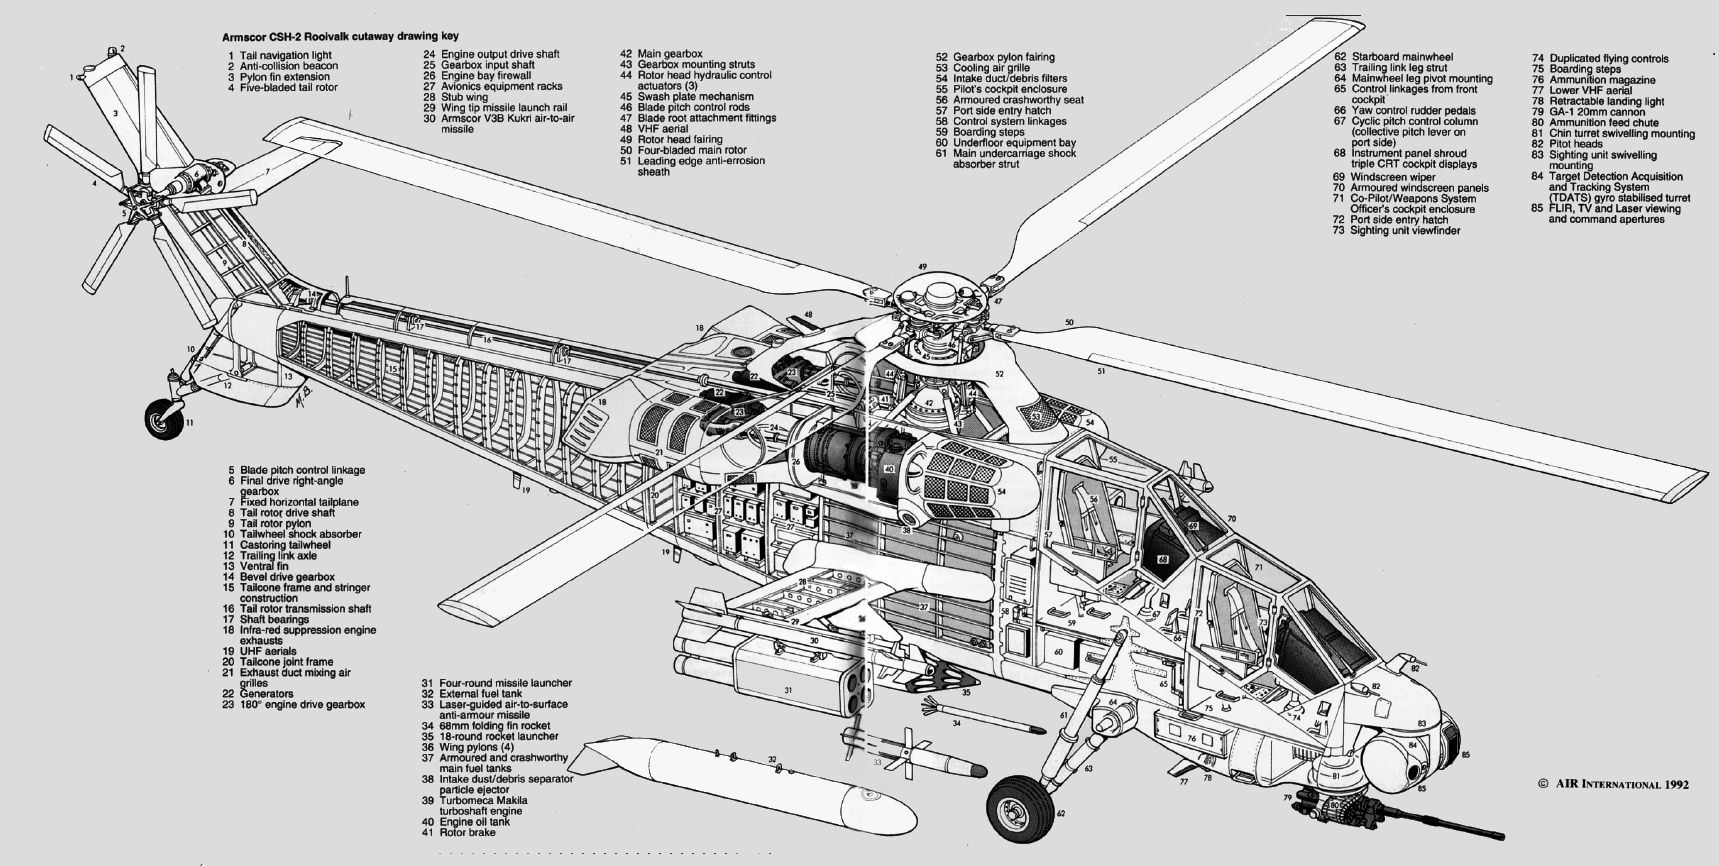 Helicopter Cutaways With Images